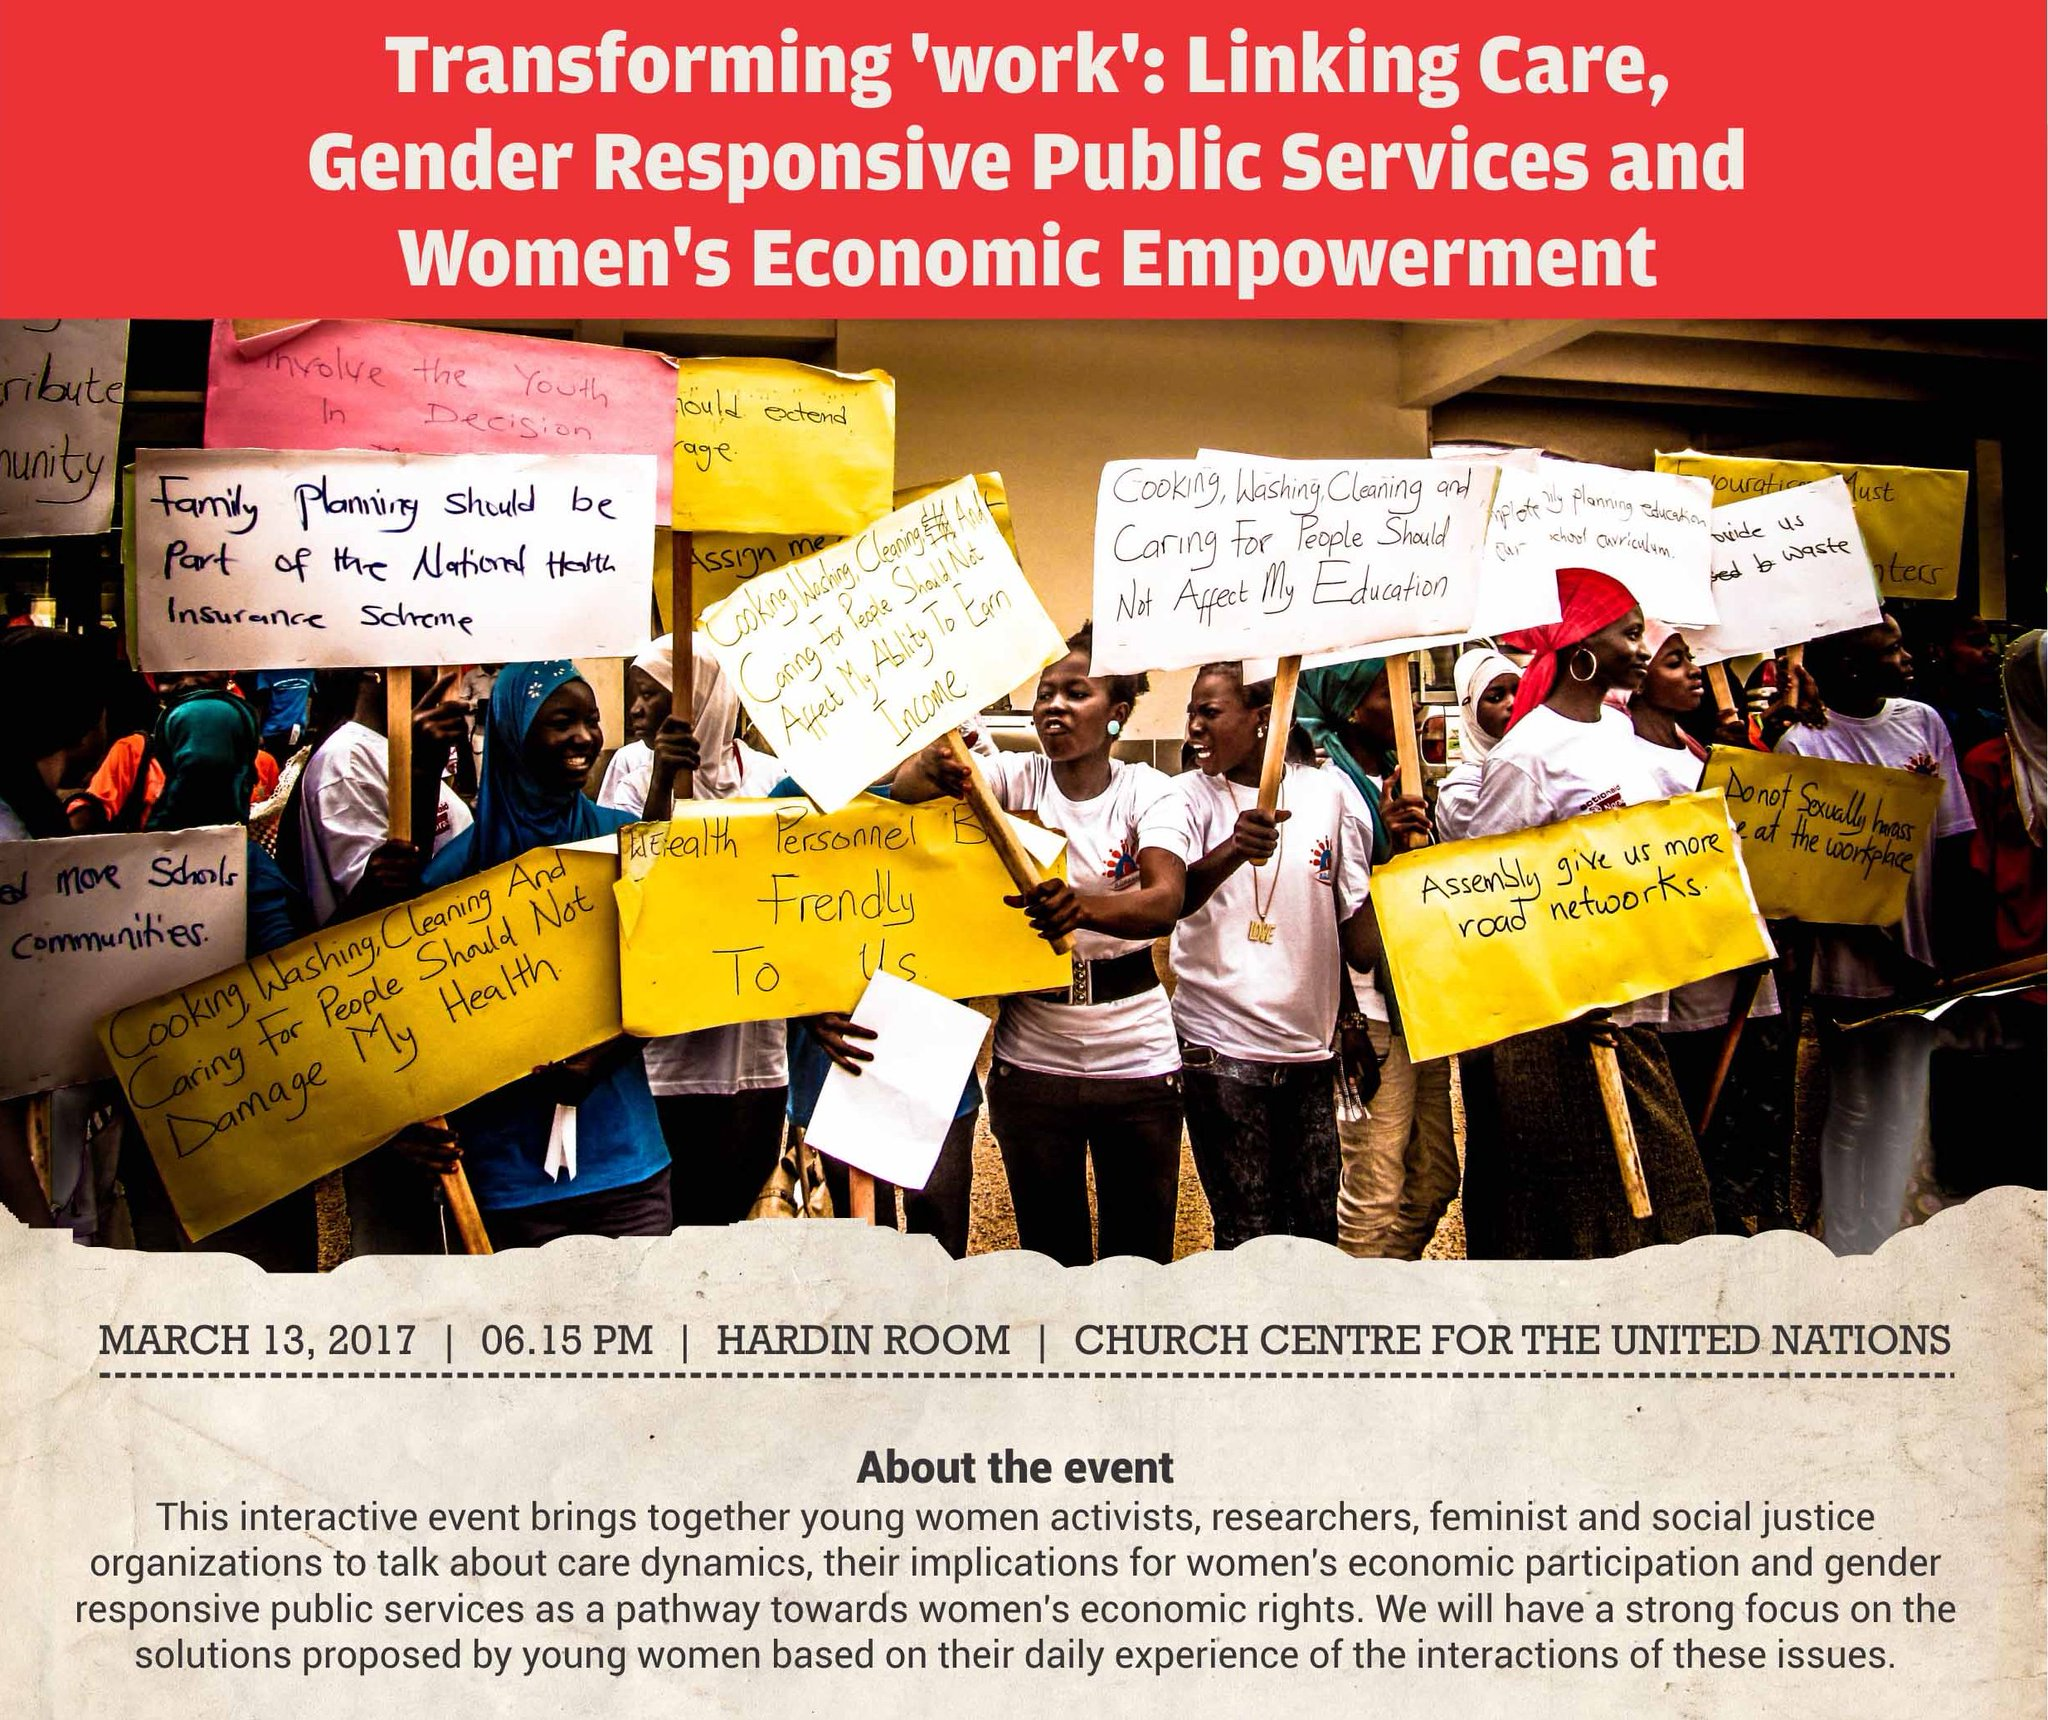 Join @IDRC_CRDI @GrOW4Women @IDS_UK in #CSW_UN panels March 13 &17 on care & #women's empowerment. Let's make #IWD2017 a daily reality https://t.co/UQehO6VPdn